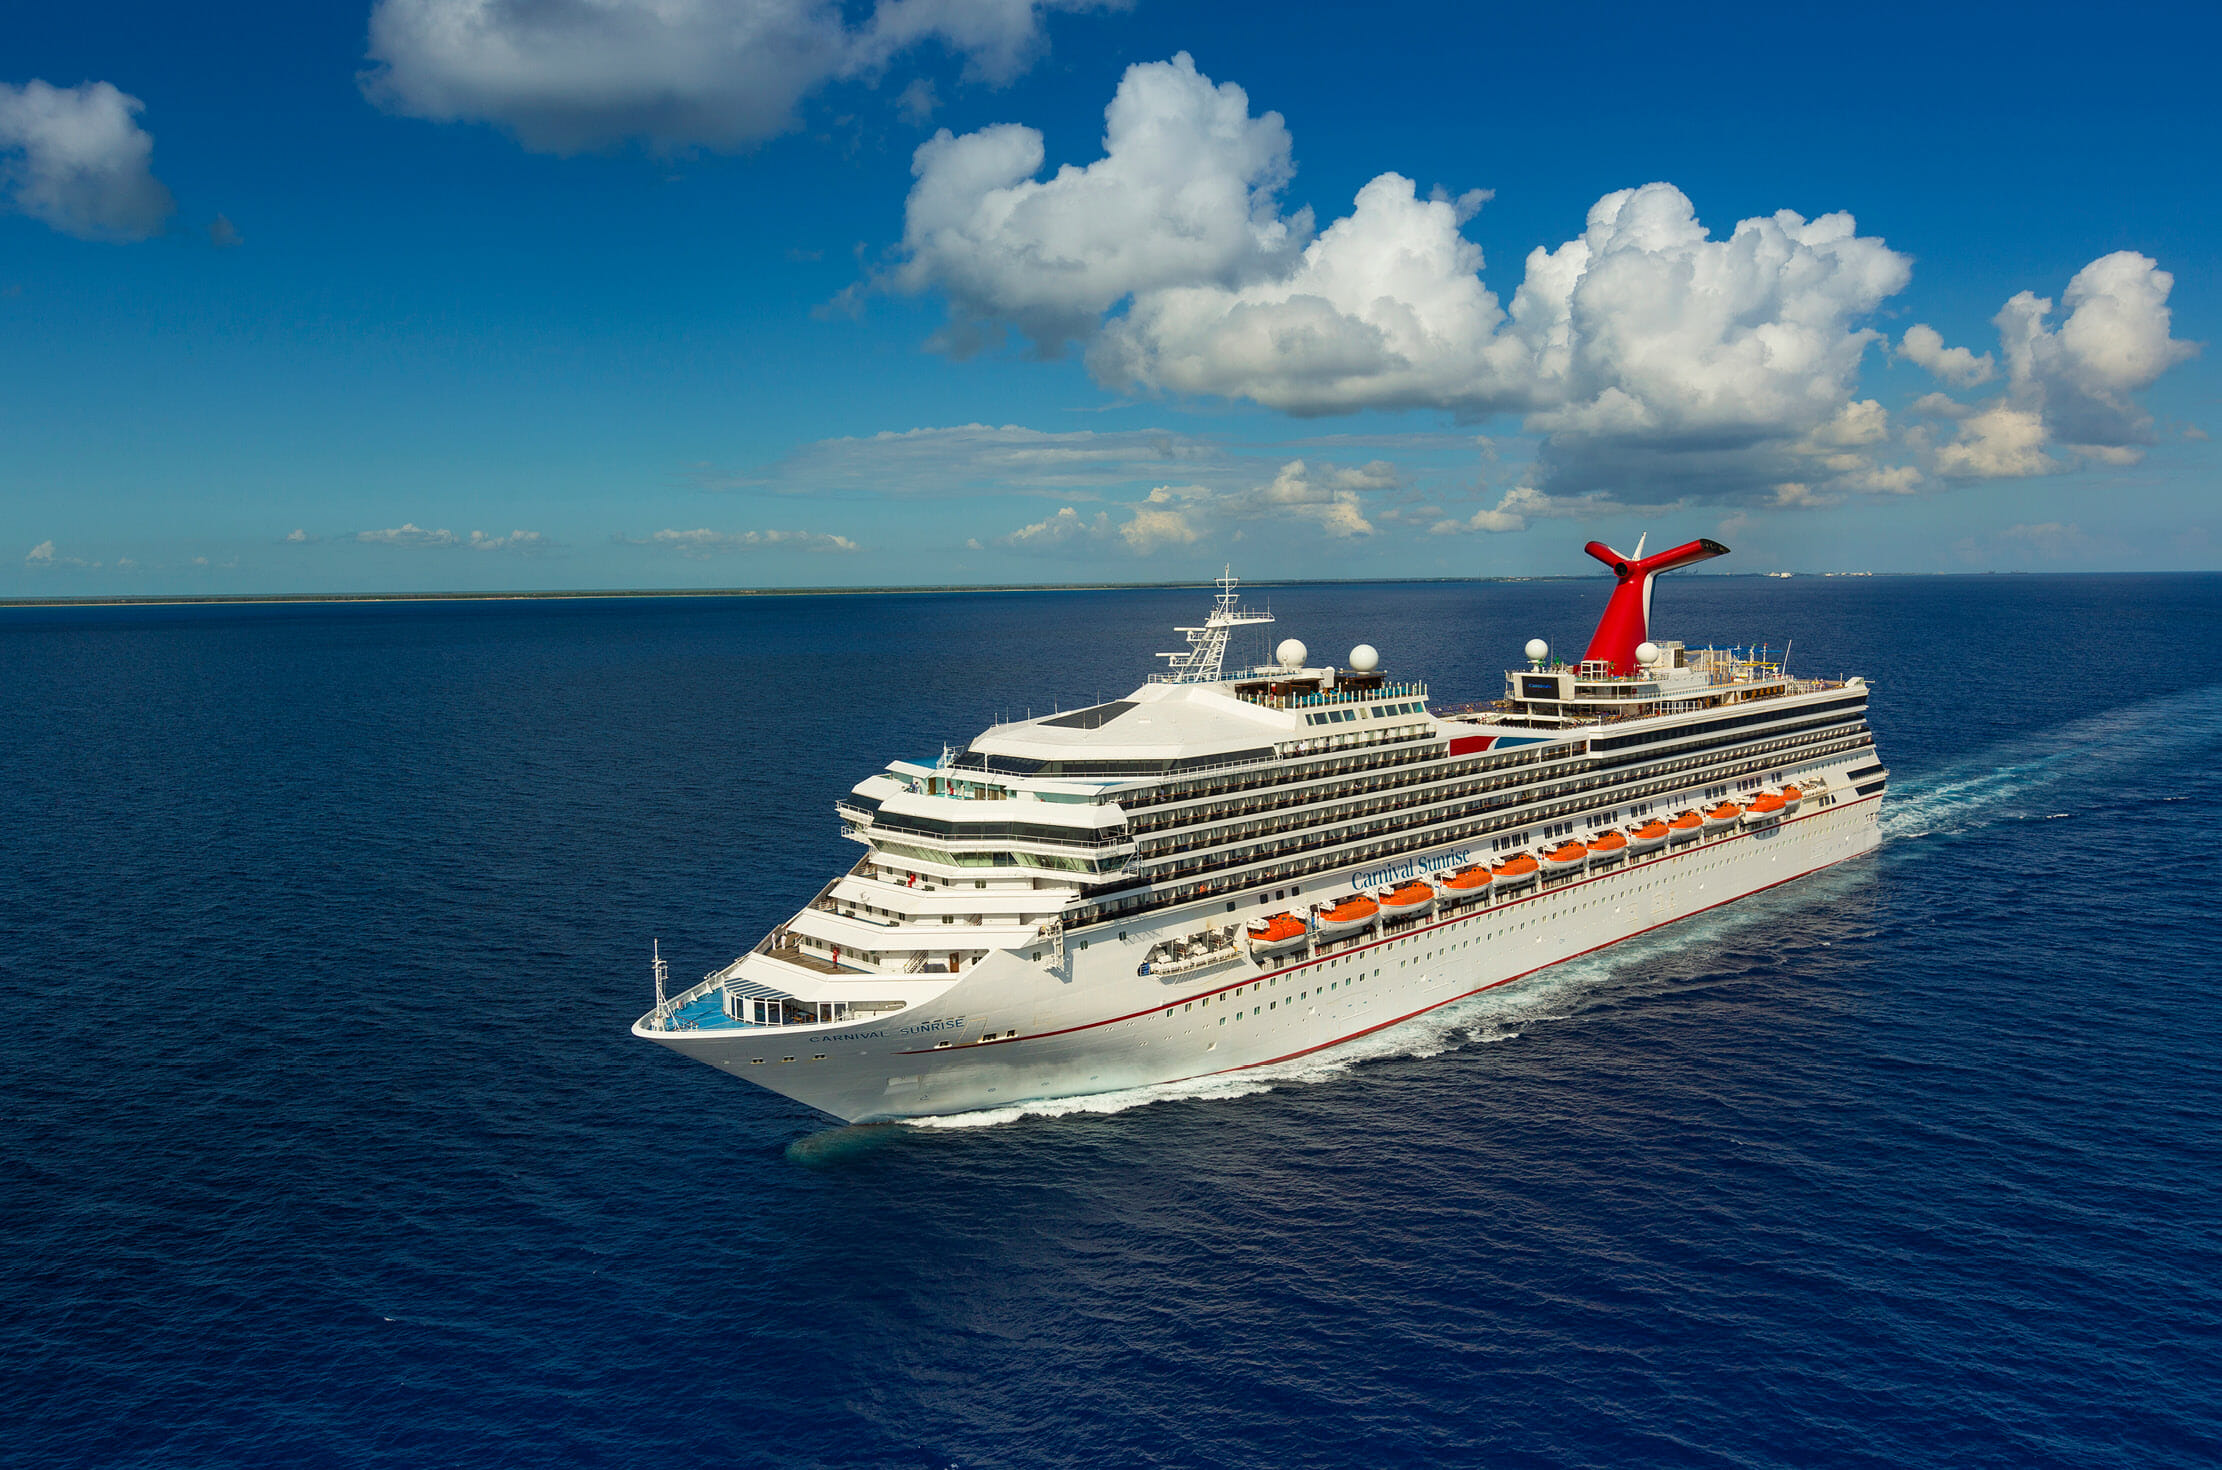 Carnival Sunrise Arrives in Fort Lauderdale to Launch a Winter Schedule of Four- and Five-Day Cruises